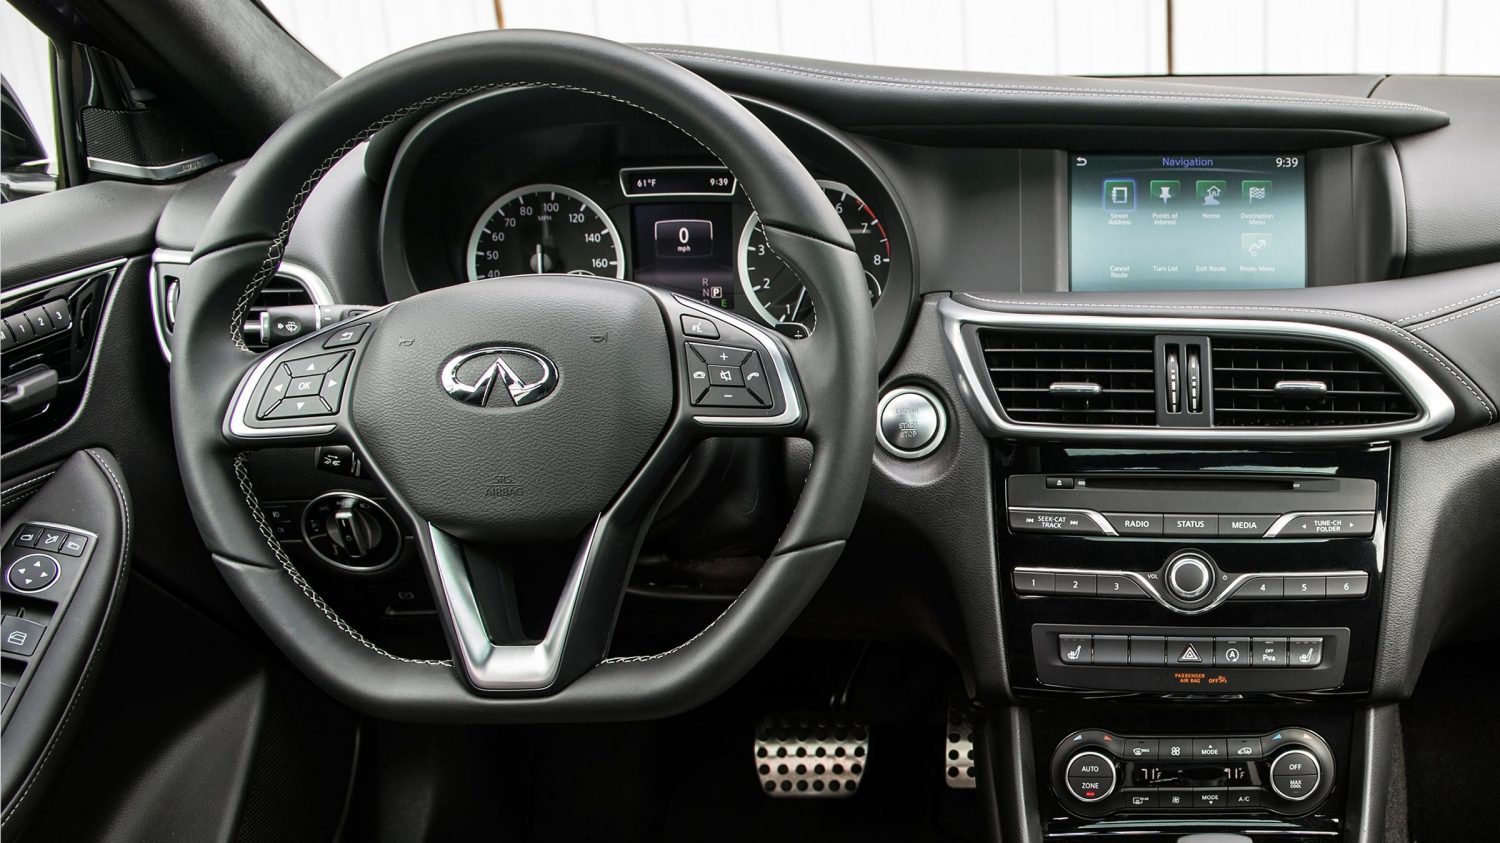 2018 INFINITI QX30 Crossover Connectivity Features